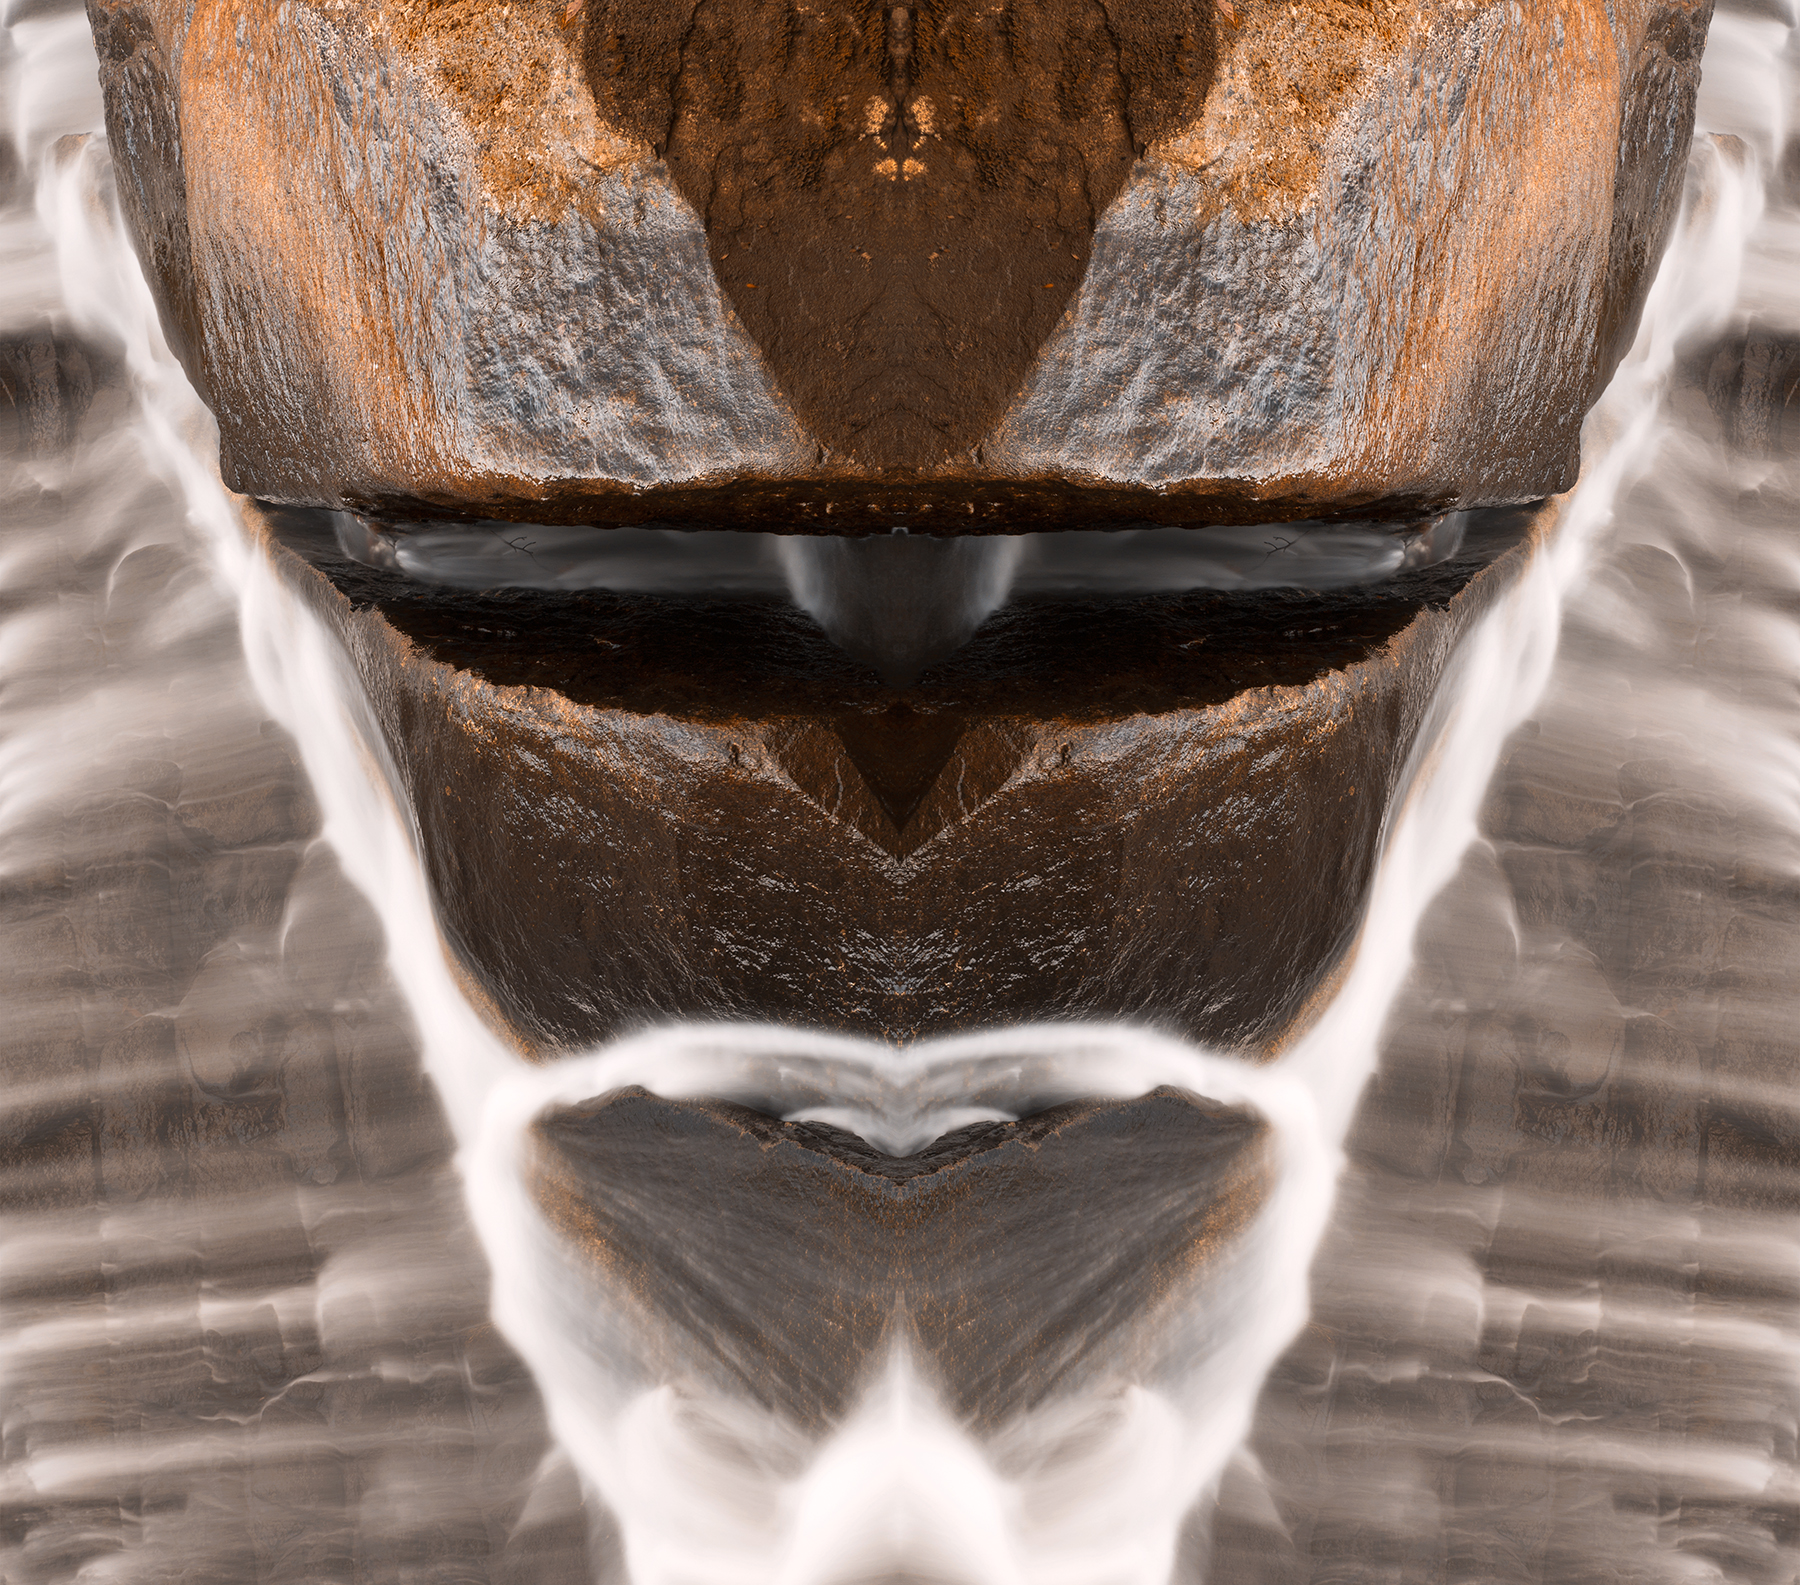 Alien Tribal Mask, Abstract, Nose, Rocks, Rock, HQ Photo